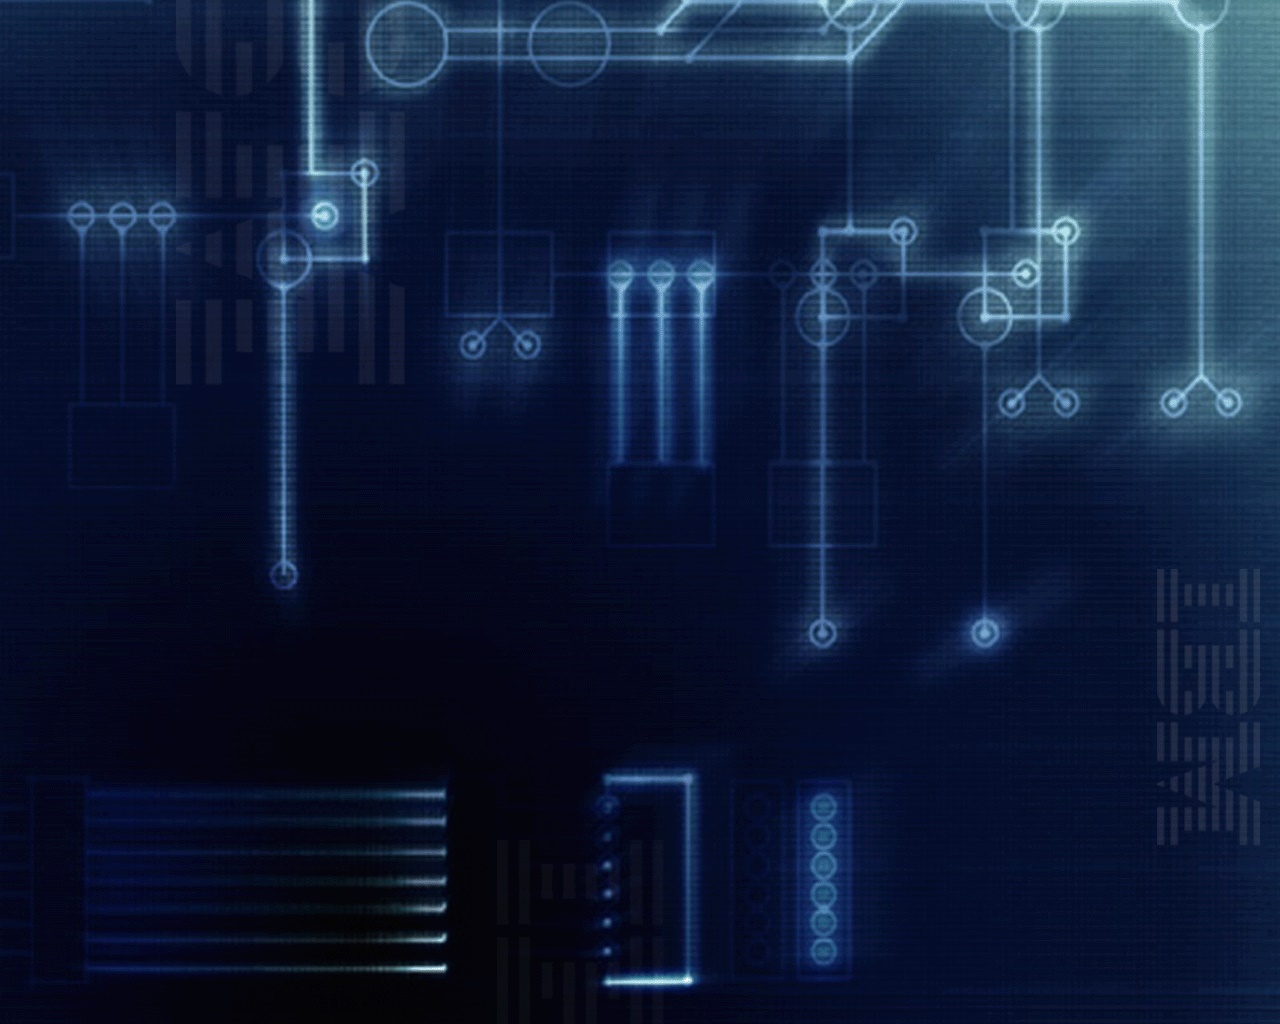 1280x1024 IBM Blue Circuits Desktop Wallpapers And Stock Photos